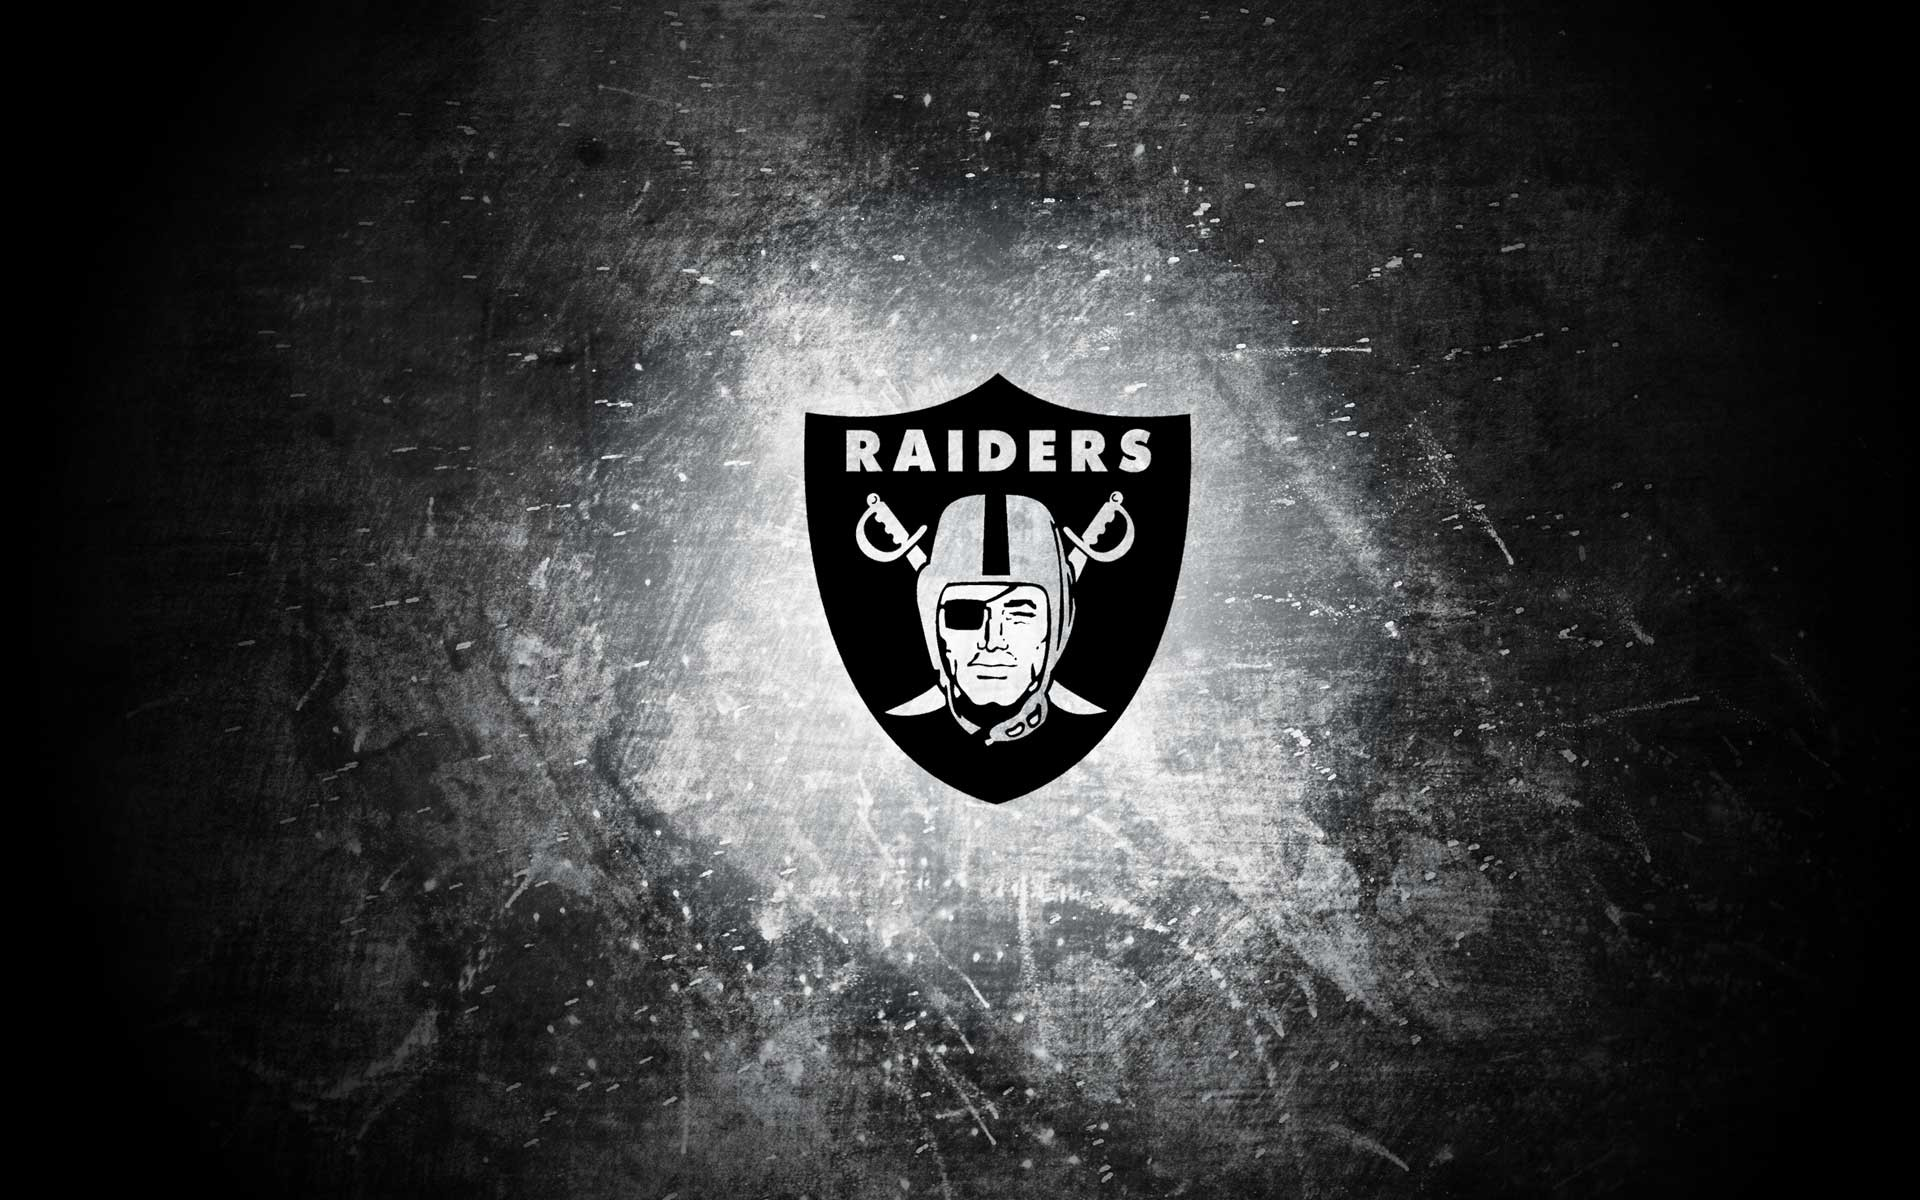 Oakland raiders logo wallpaper 1920x1200 oakland wallpapers full hd wallpaper search voltagebd Image collections